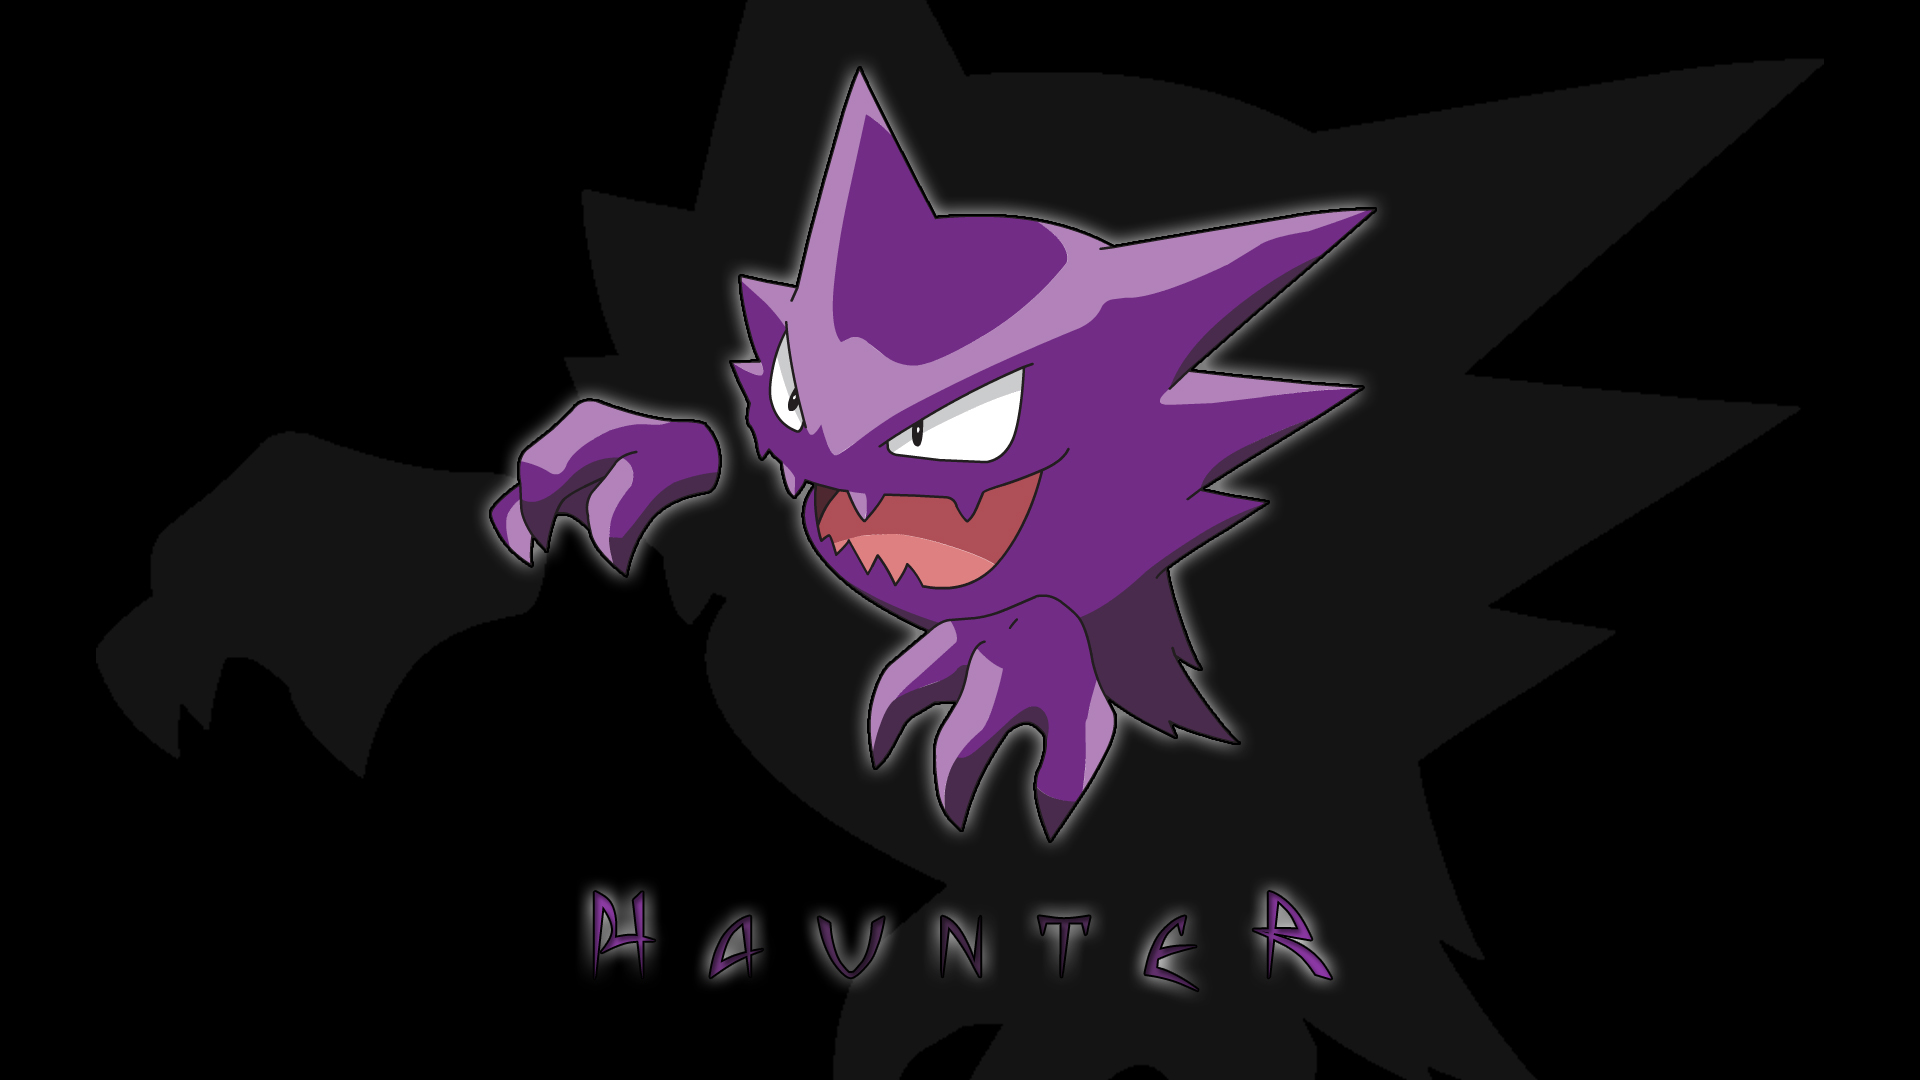 haunter hd wallpapers - photo #23